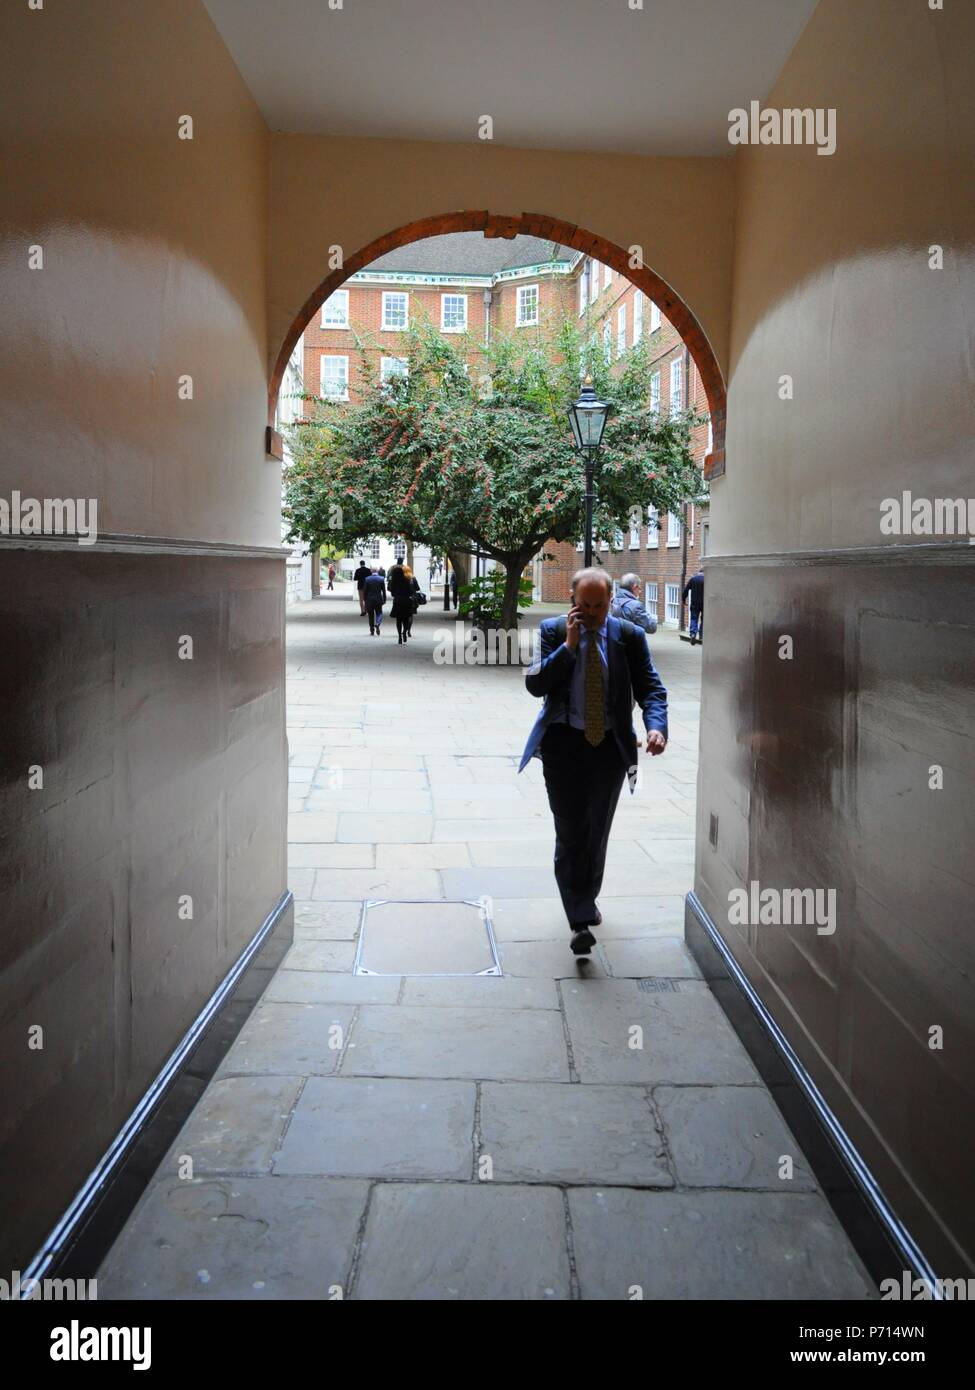 Corridor between Middle Temple Lane and Pump Court, London UK. - Stock Image